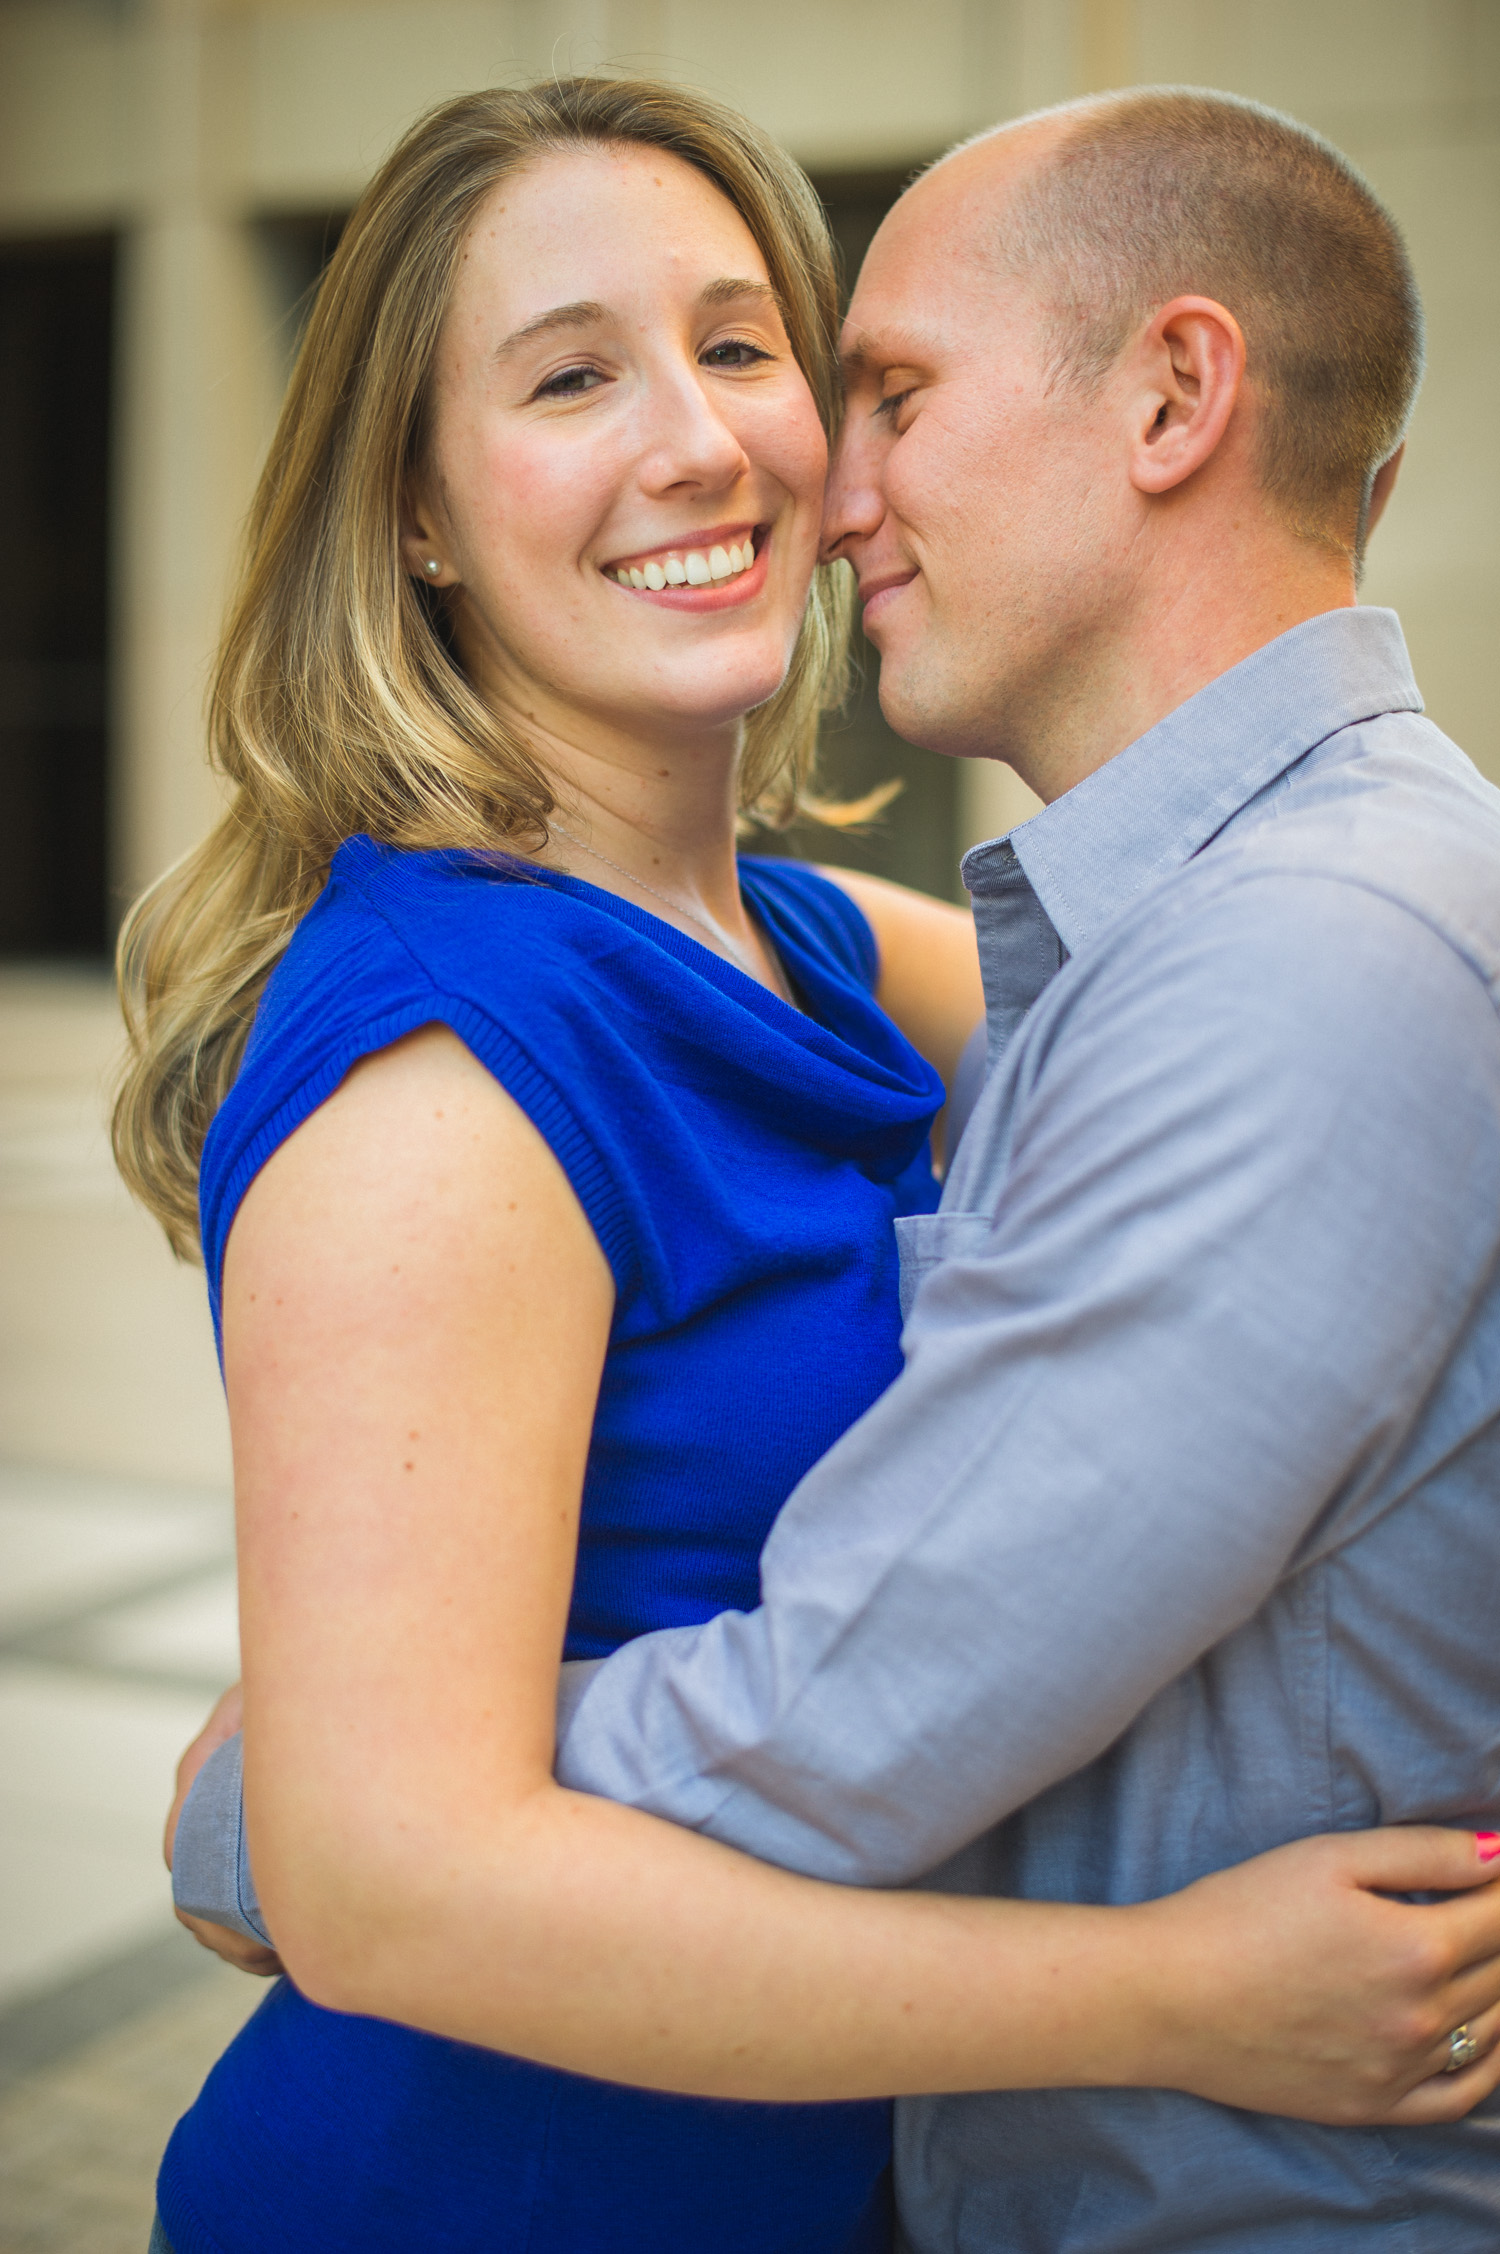 brandywine-park-city-of-wilmington-engagement-session-11.jpg